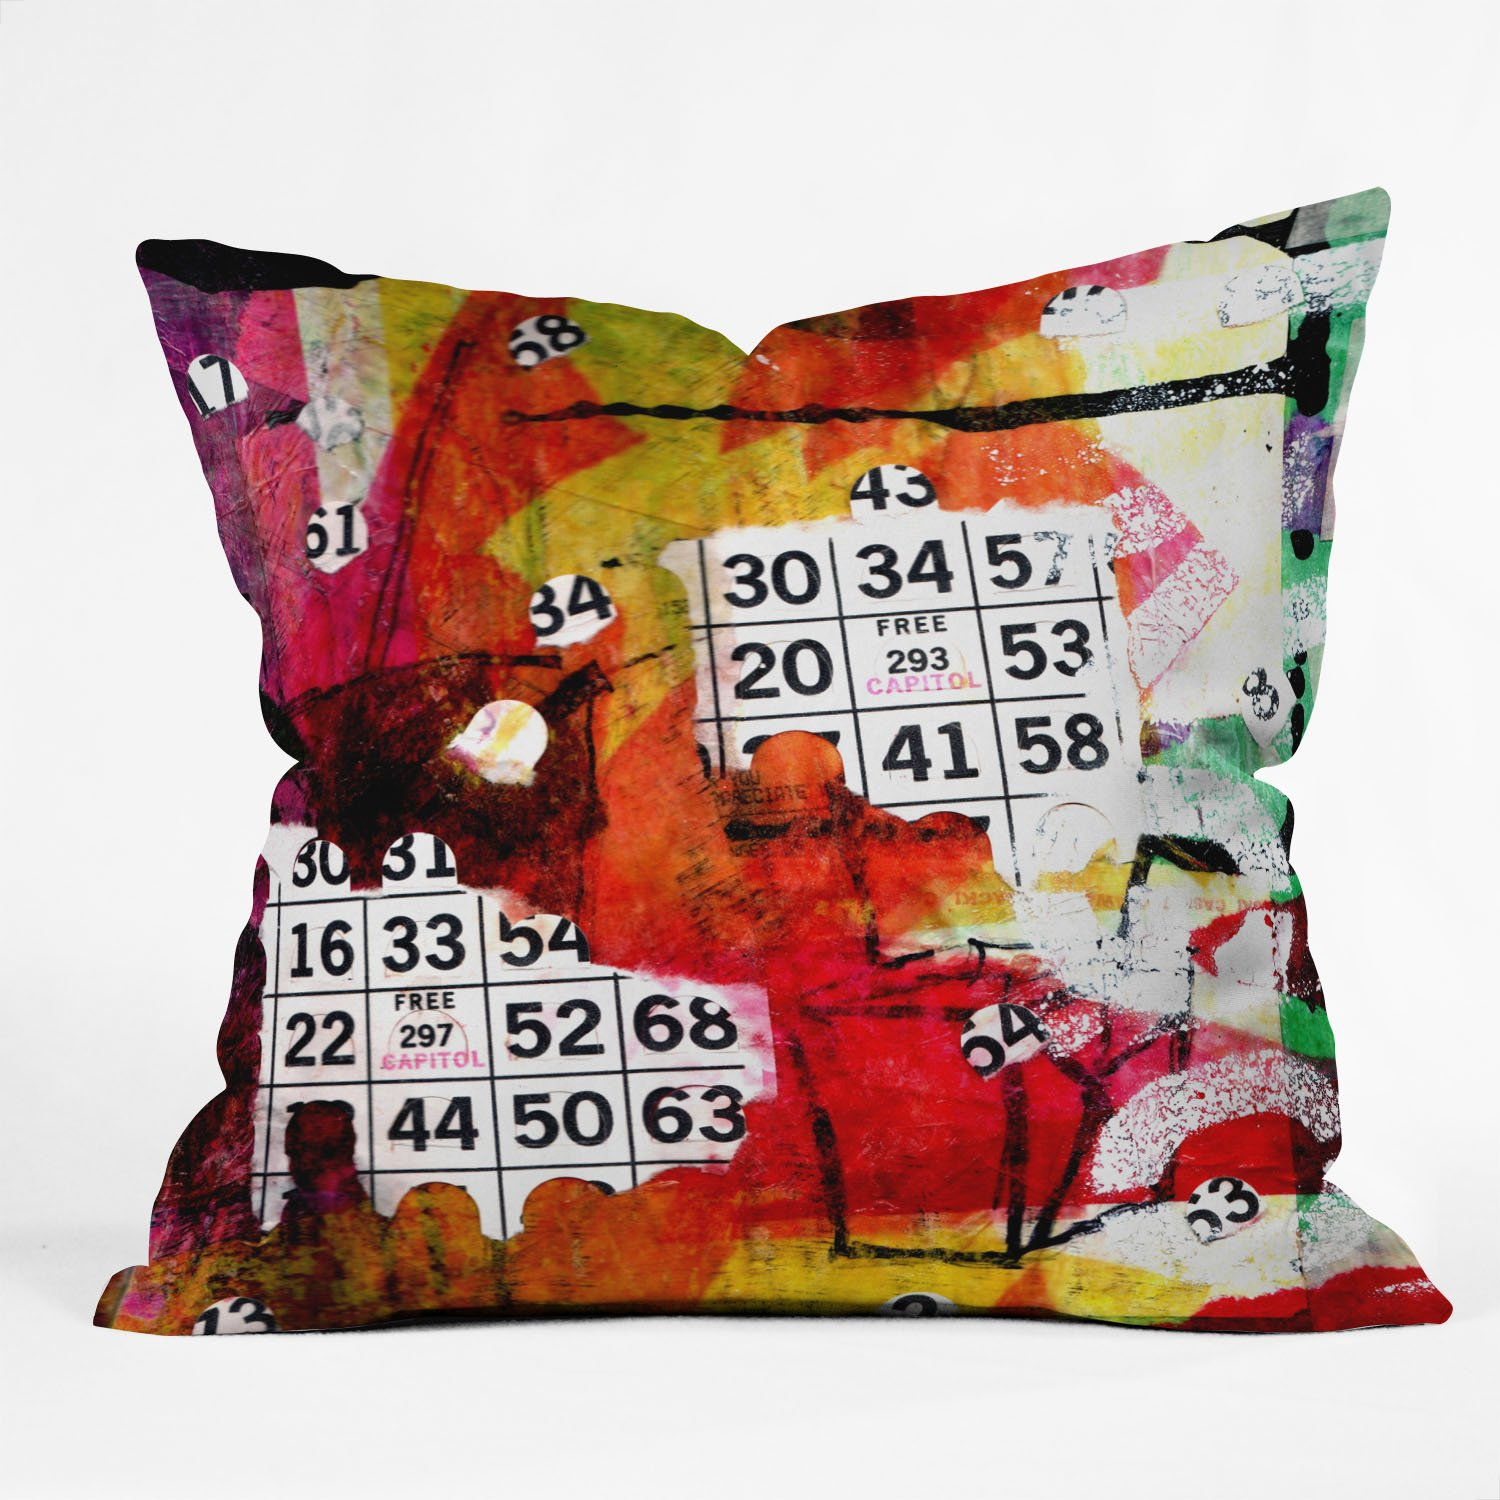 Deny Designs Sophia Buddenhagen Bright Bingo 2 Throw Pillow, 16 x 16 by Deny Designs